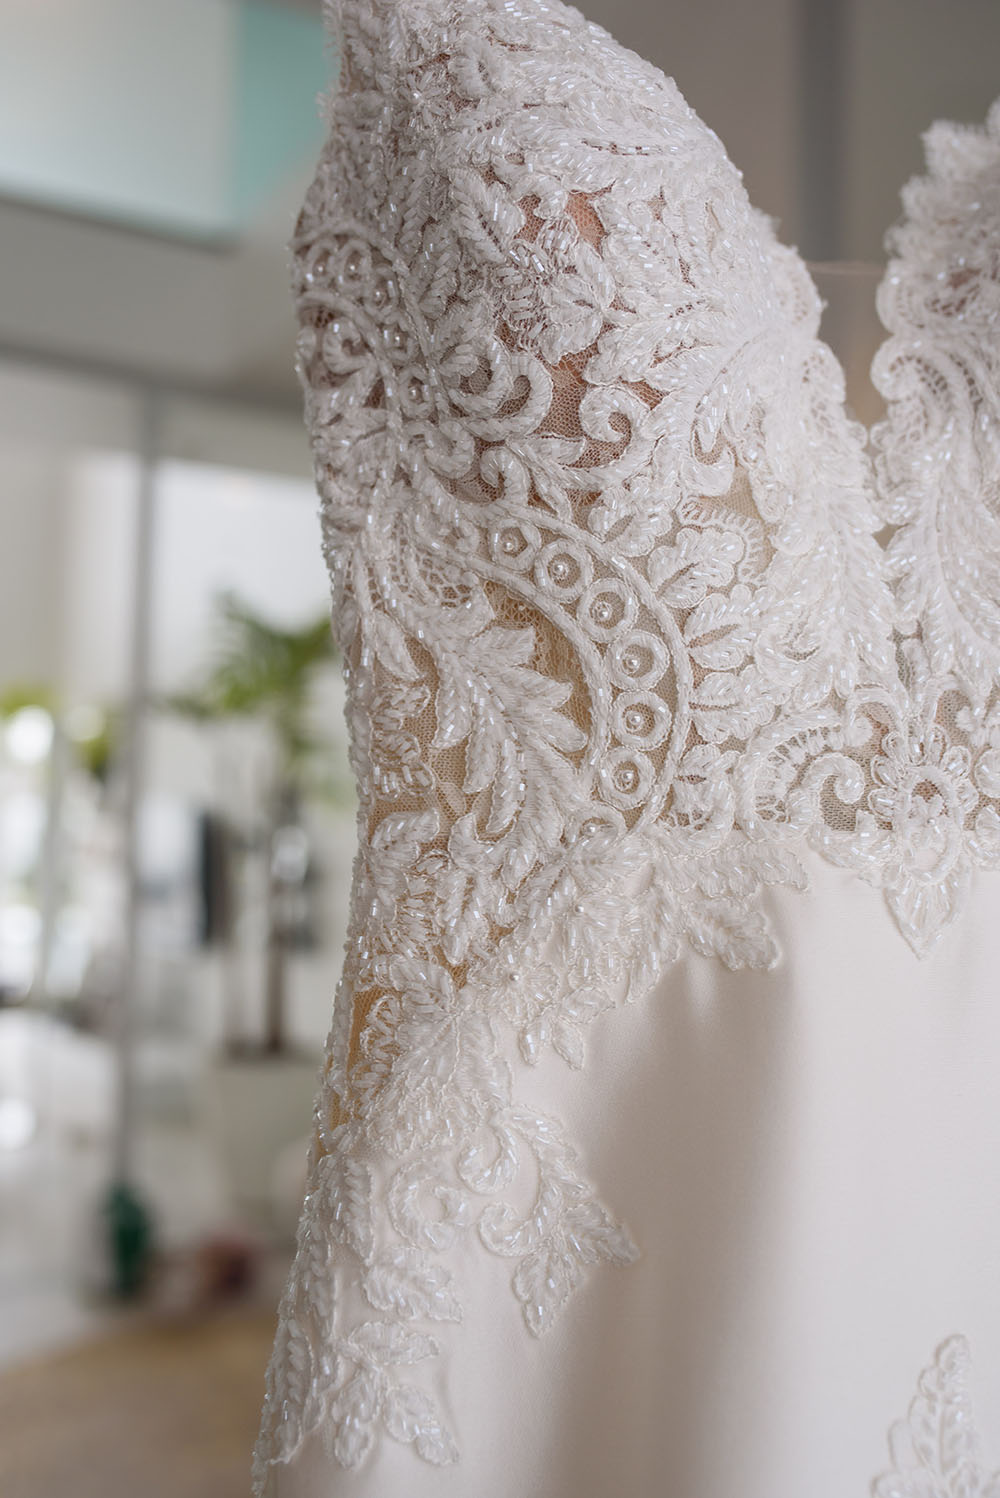 artistic shot of wedding dress